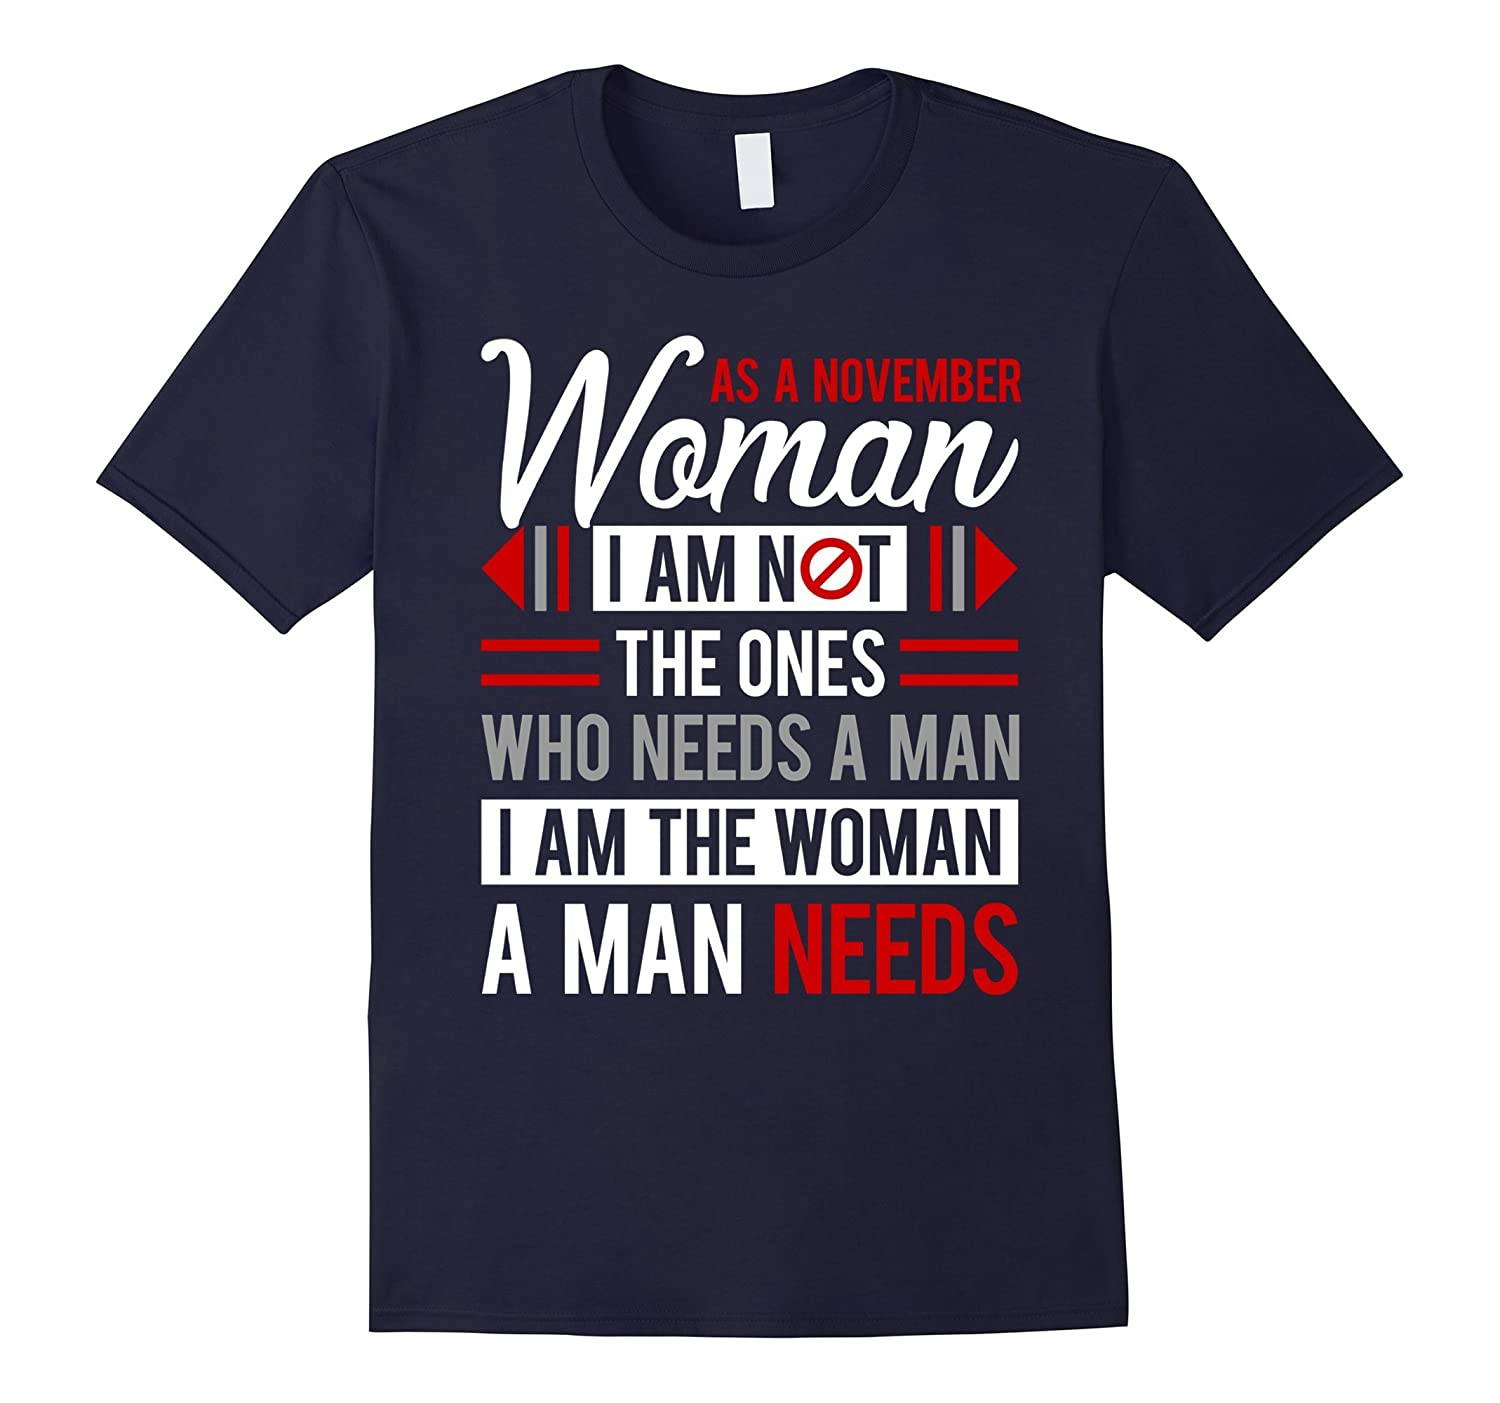 As A November Woman I Am Not The Ones Who Need A Man T-Shirt-Rose